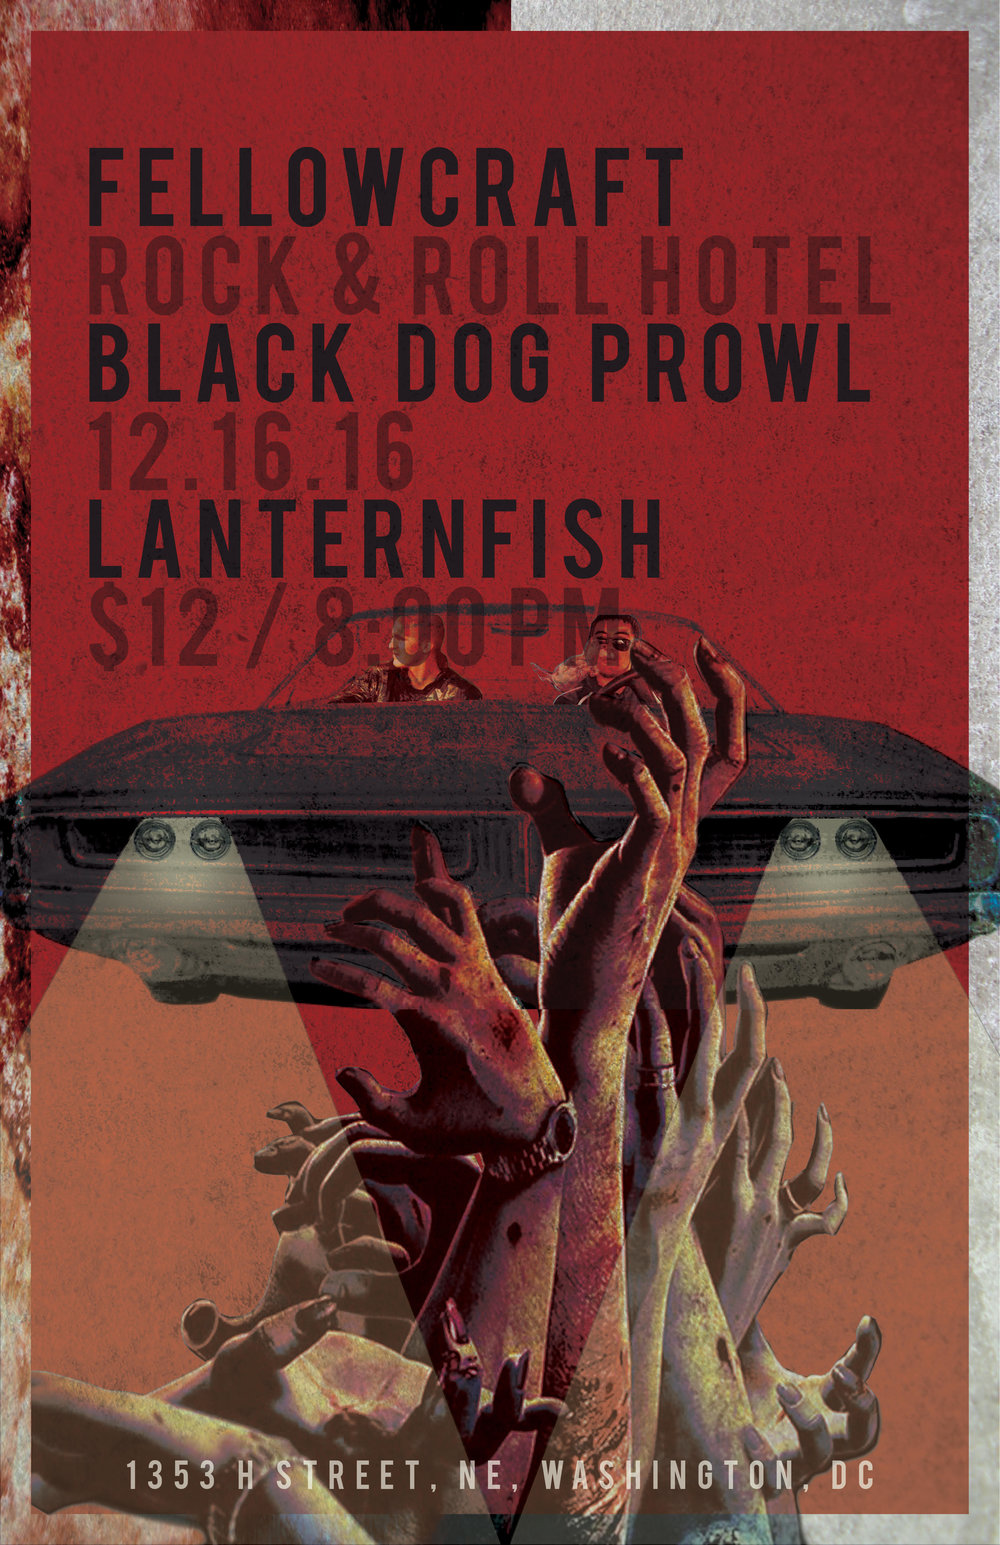 Fellowcraft Black Dog Prowl Lanternfish RocknRoll Hotel